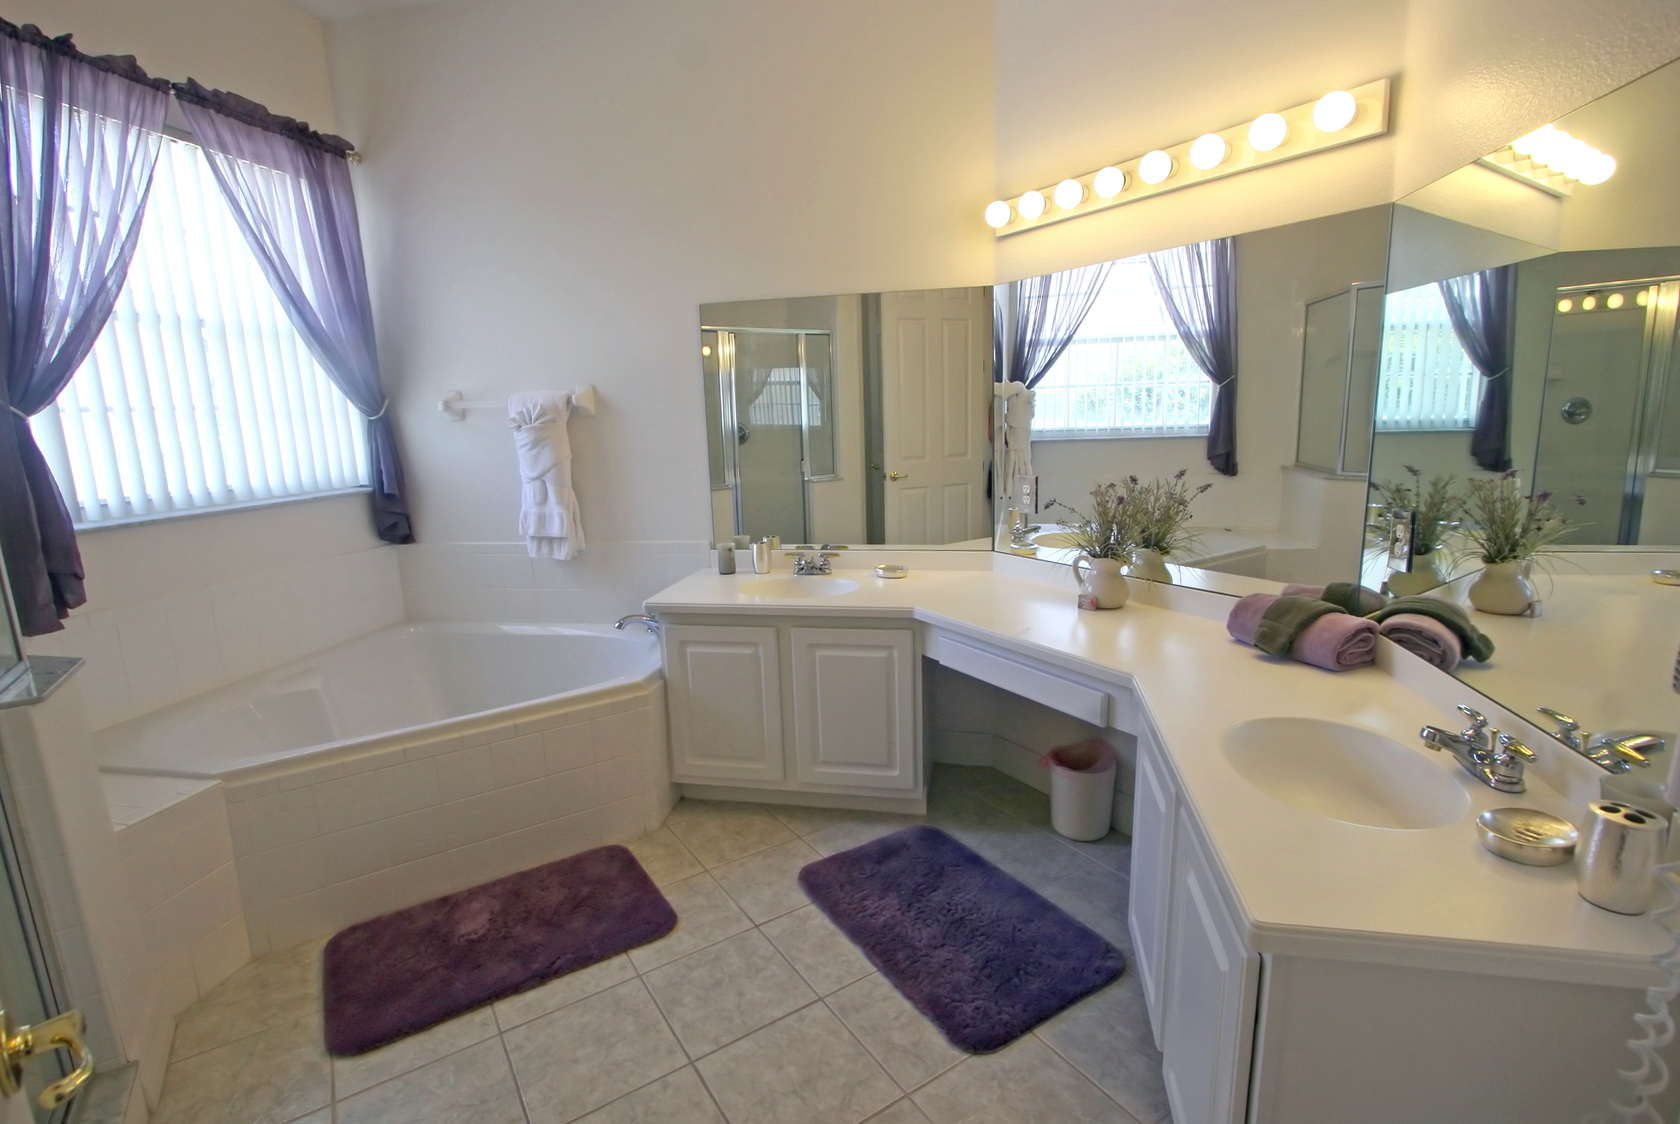 Bathroom Remodel Ideas For Mobile Homes